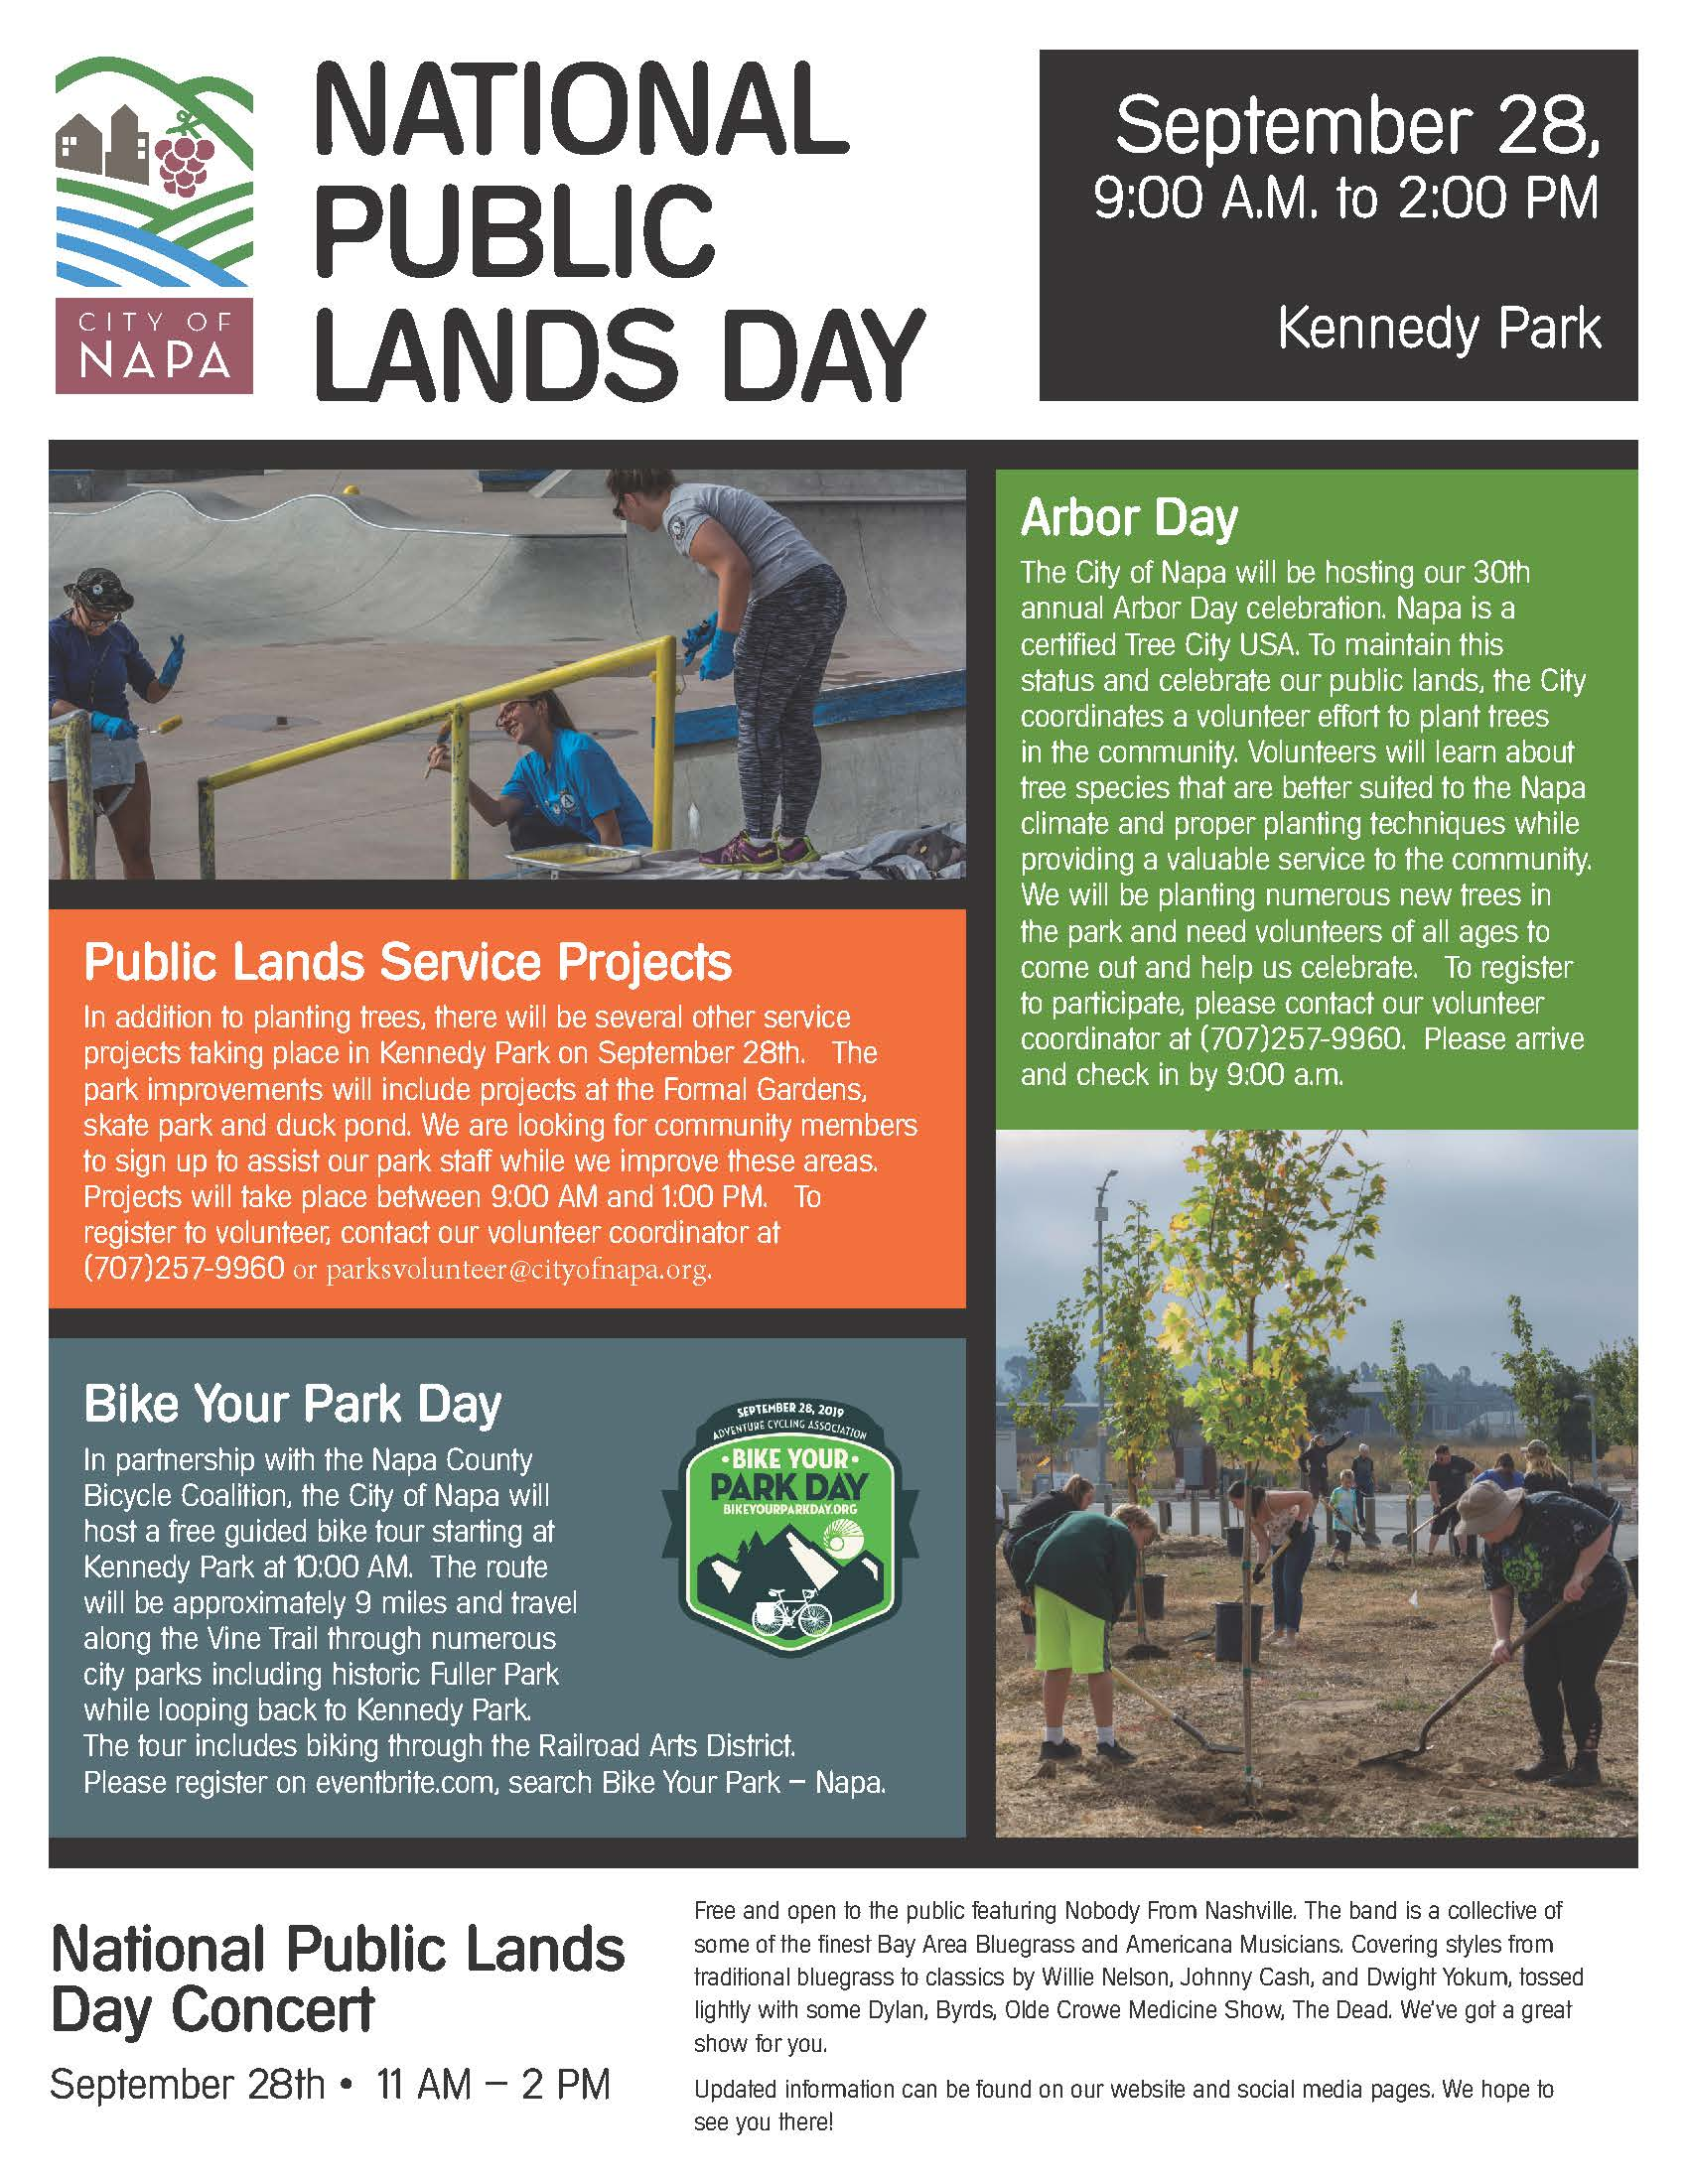 National Public Lands Day Event Flyer